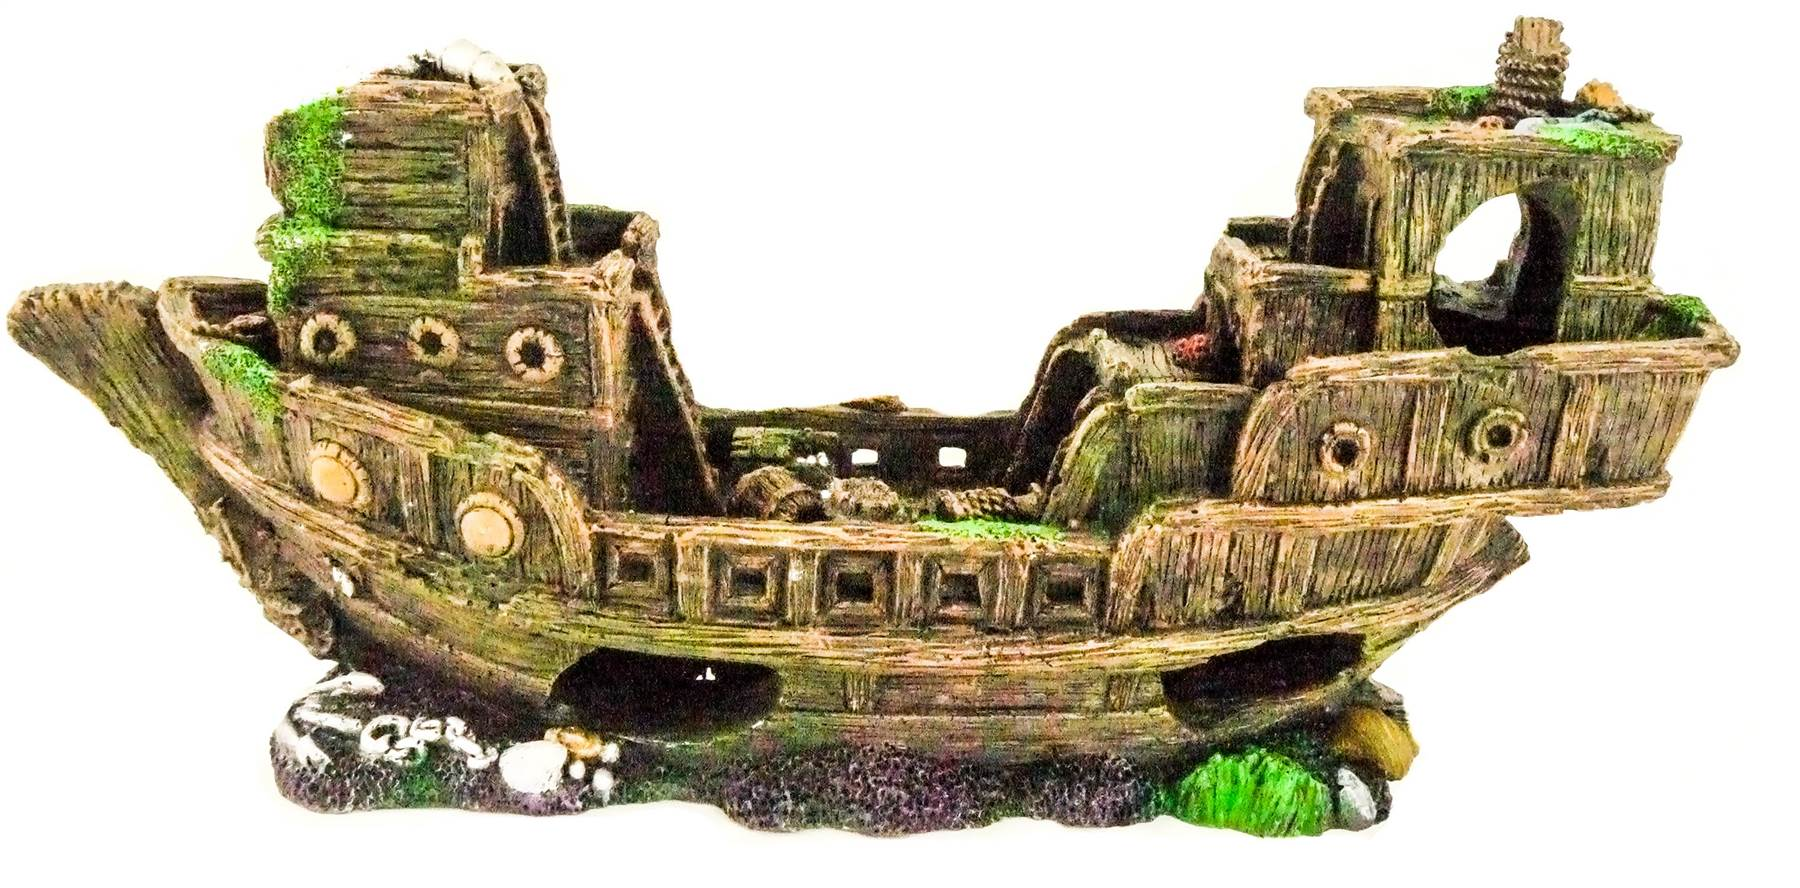 Large aquarium shipwreck ornament decoration tropical for Aquarium decoration shipwreck